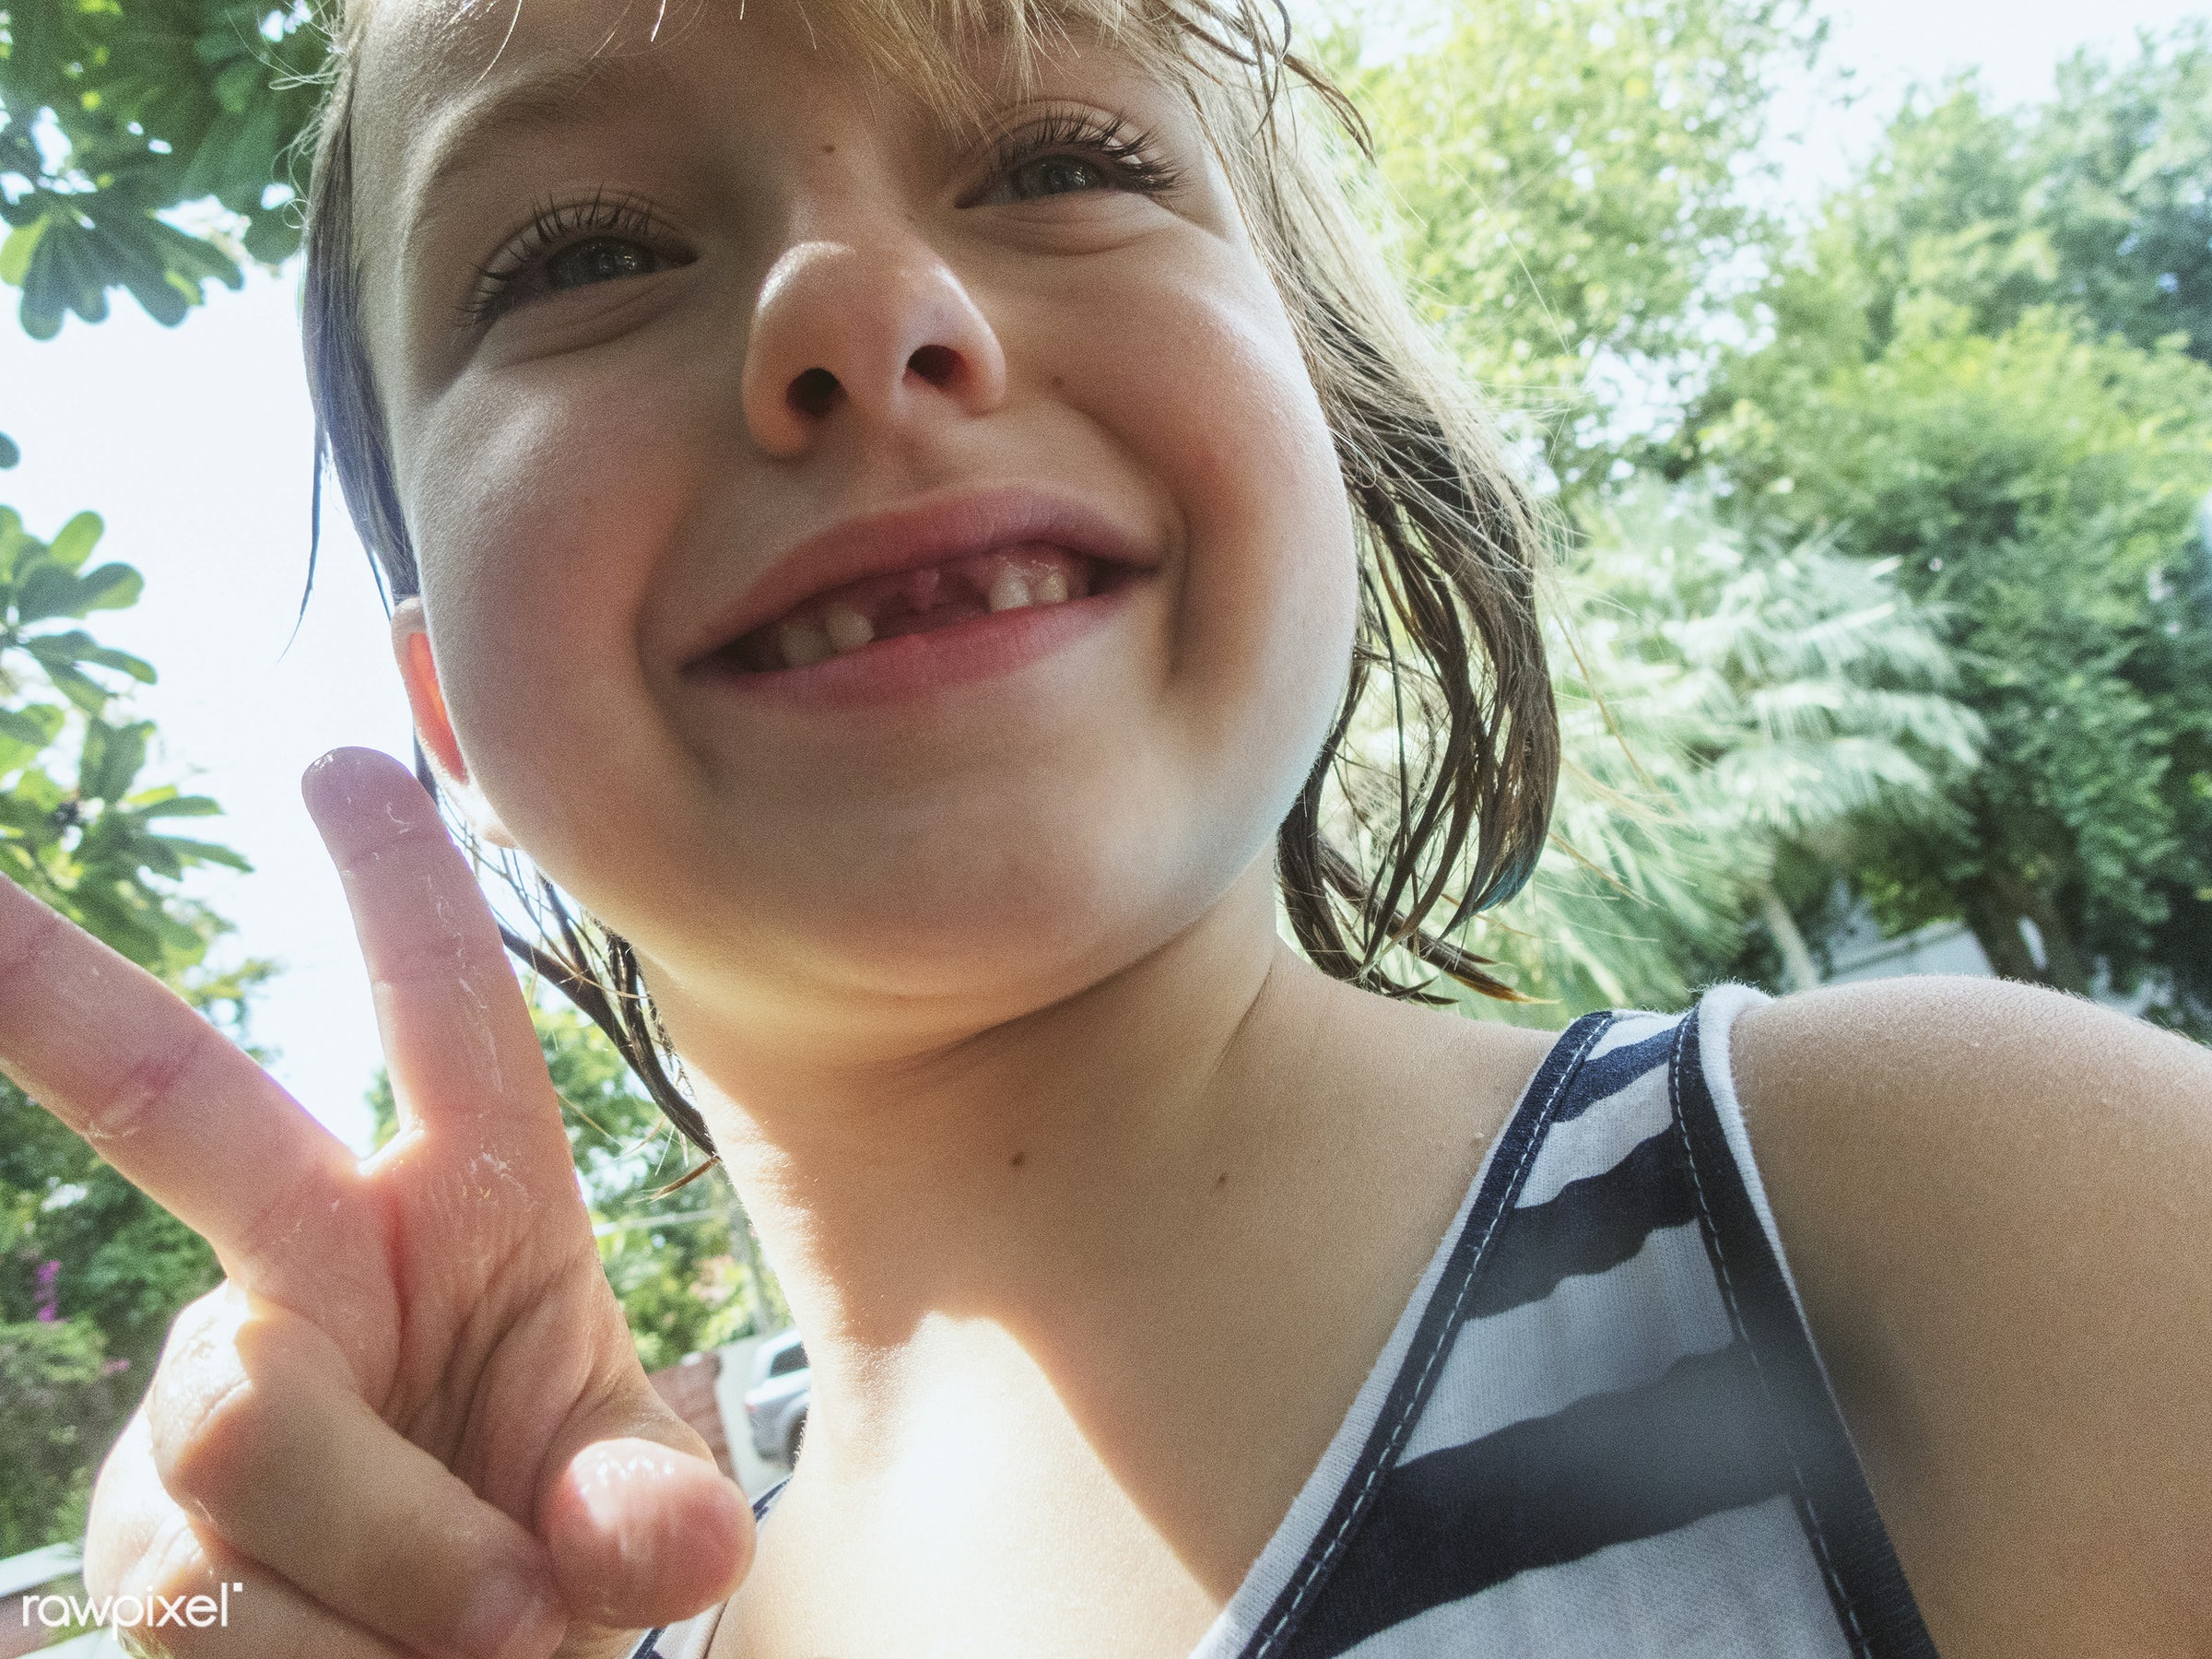 Caucasain girl smiling to camera - child, kid, summer, joy, leisure, young, fun, lifestyle, girl, youth, active, casual,...